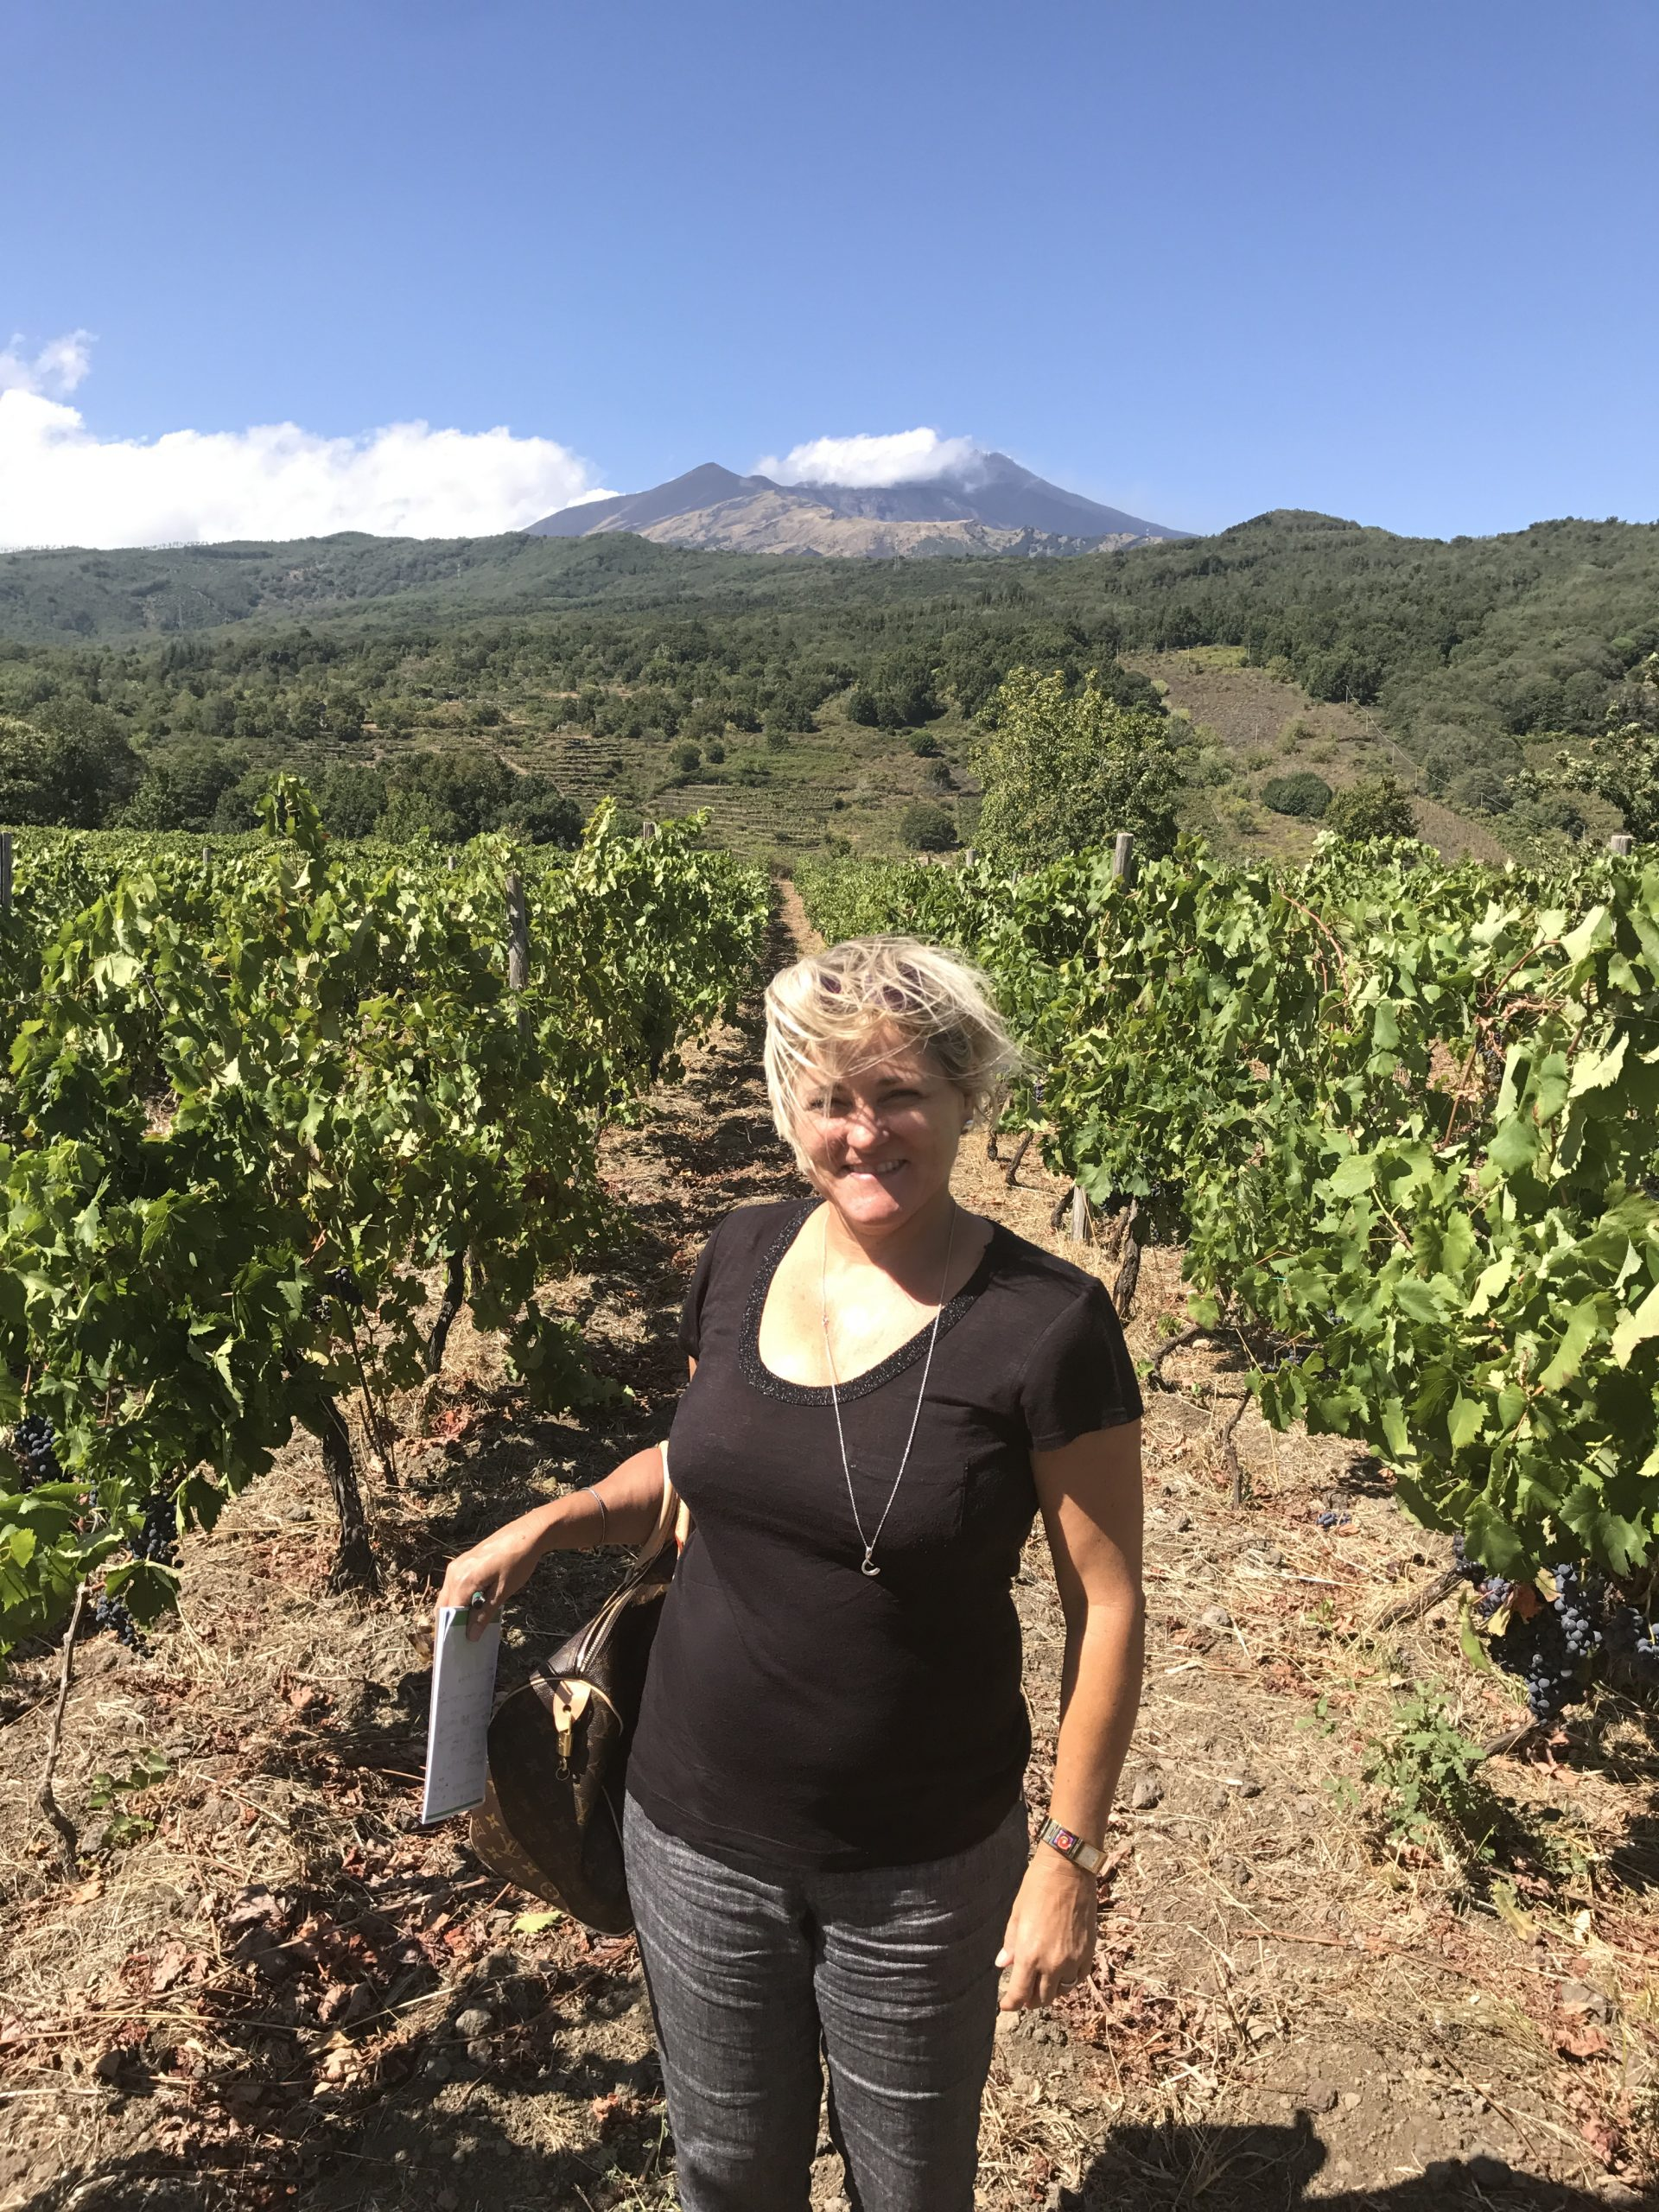 Sheila Donohue of Vero in a vineyard in front of the volcano Etna (photo courtesy Sheila Donohue)